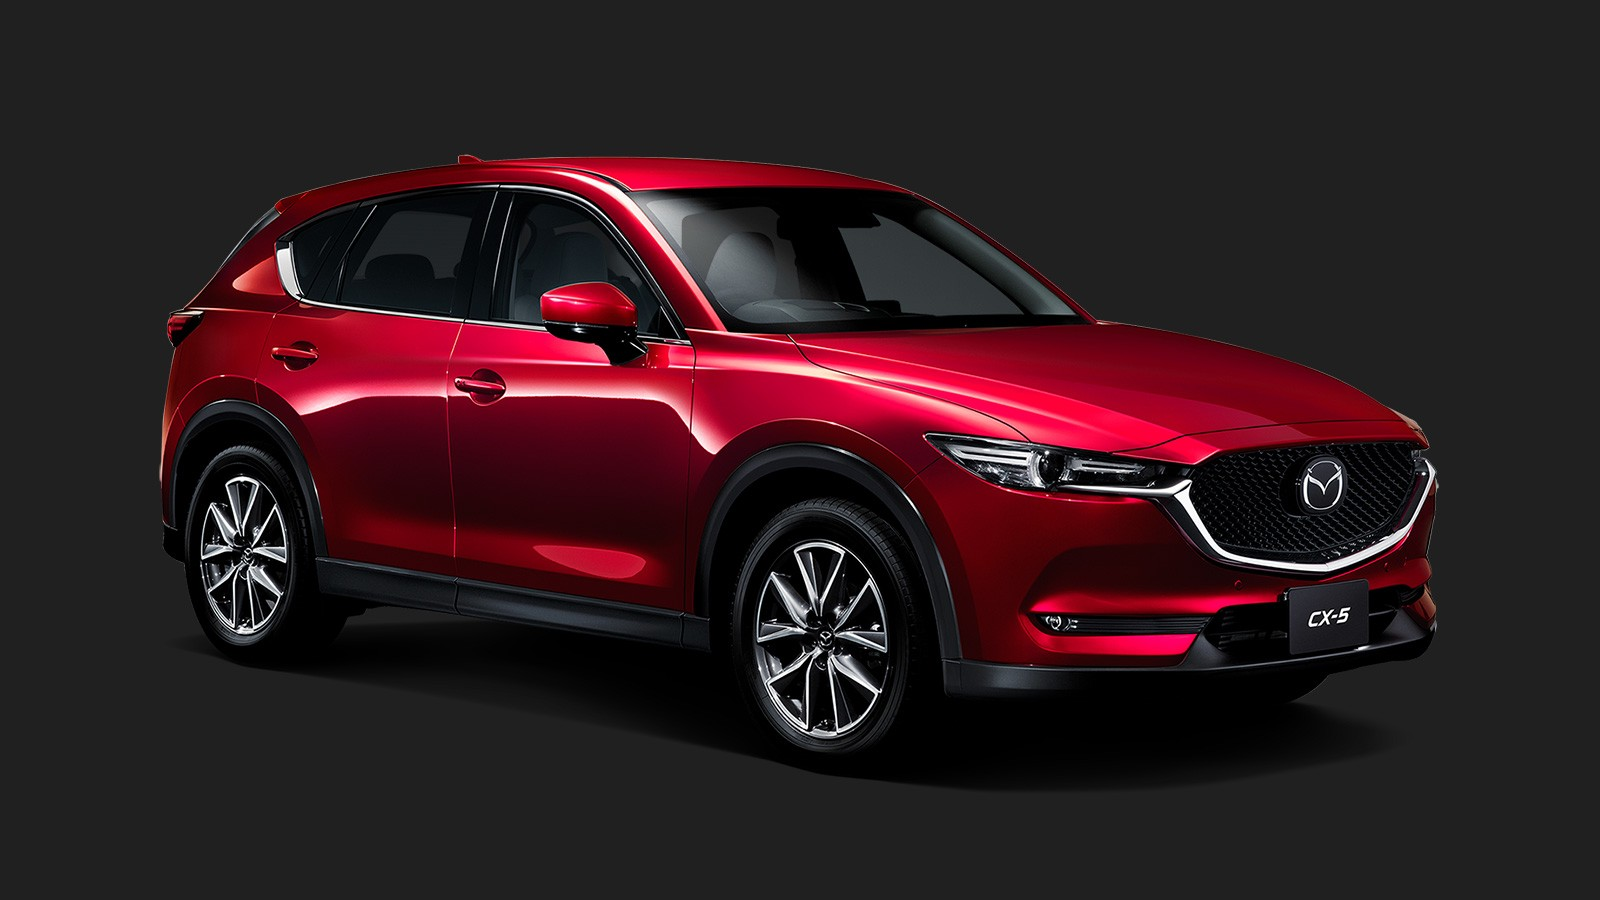 mazda s 2017 geneva motor show debuts include new cx 5. Black Bedroom Furniture Sets. Home Design Ideas